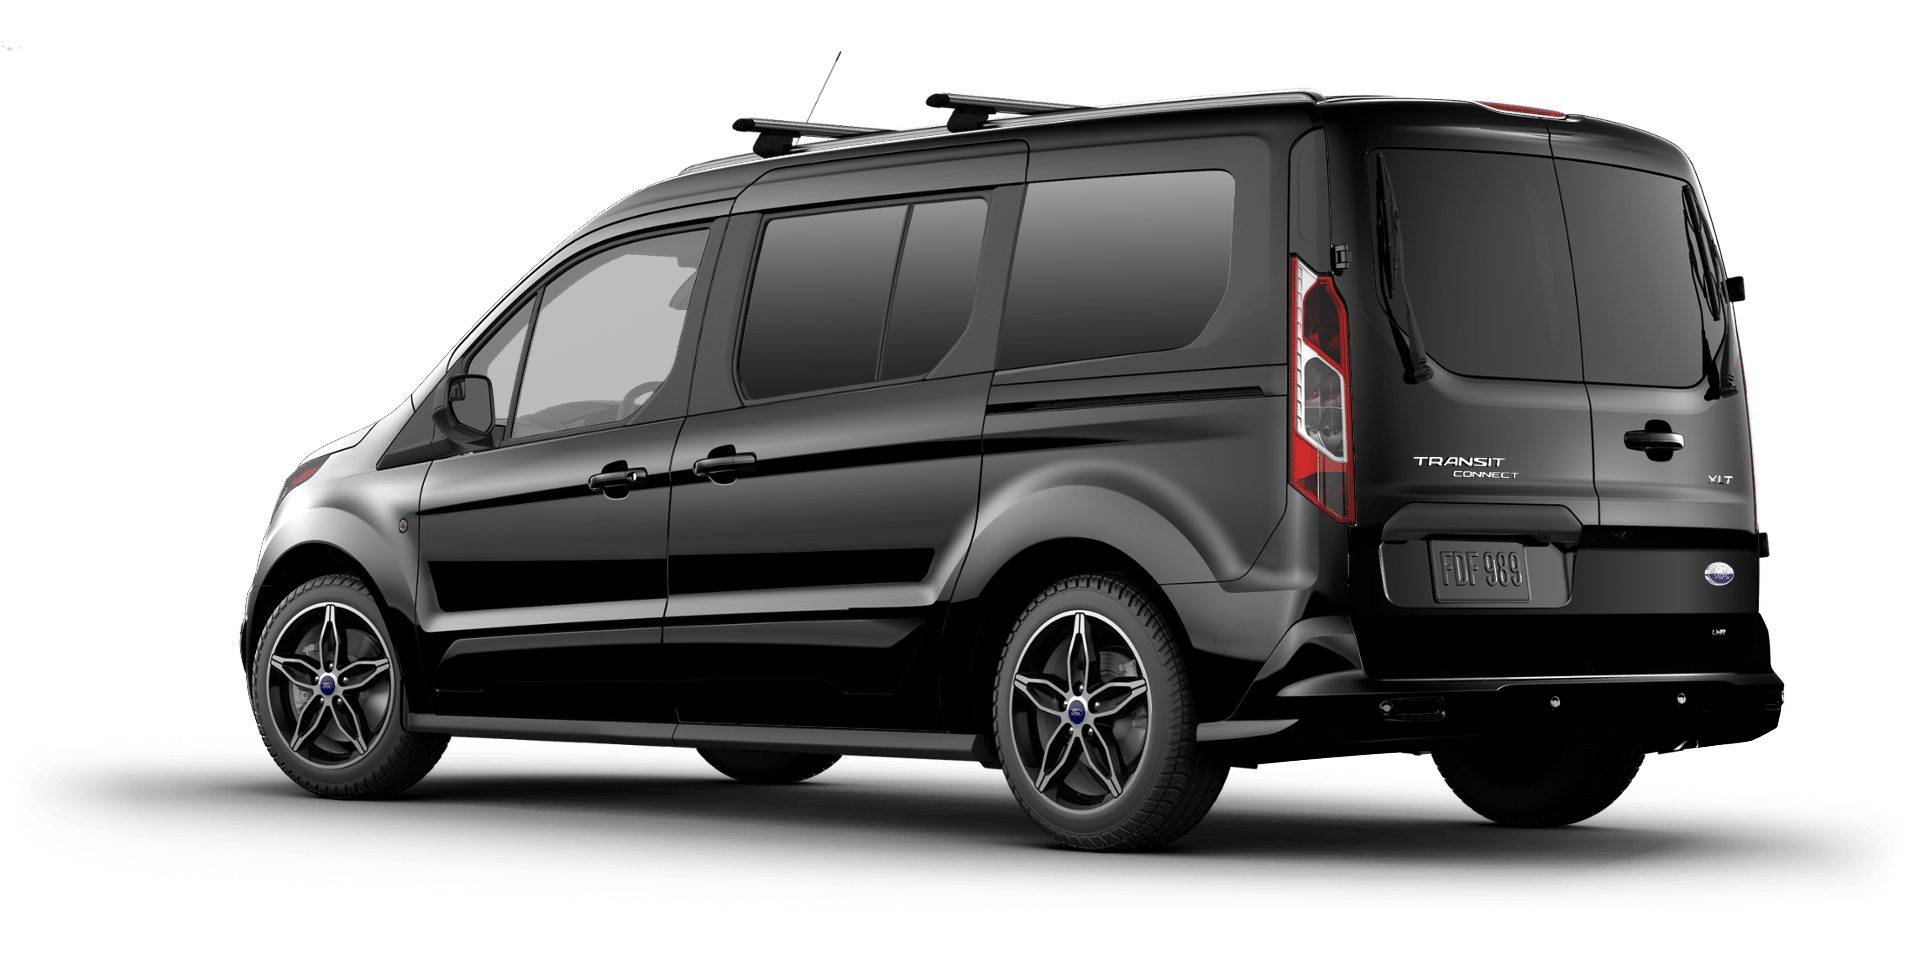 2017 Ford Transit Connect Build Price Ford Transit Hybrid